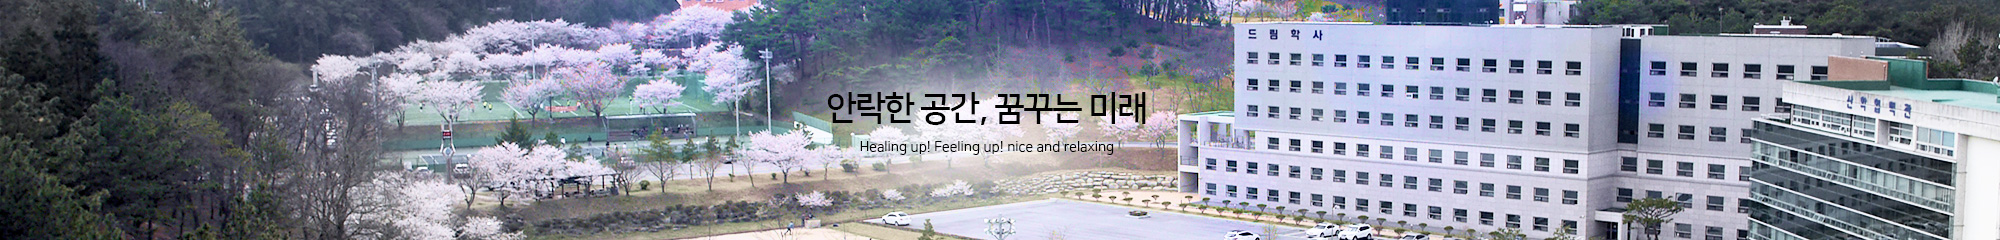 안락한 공간 꿈꾸는 미래